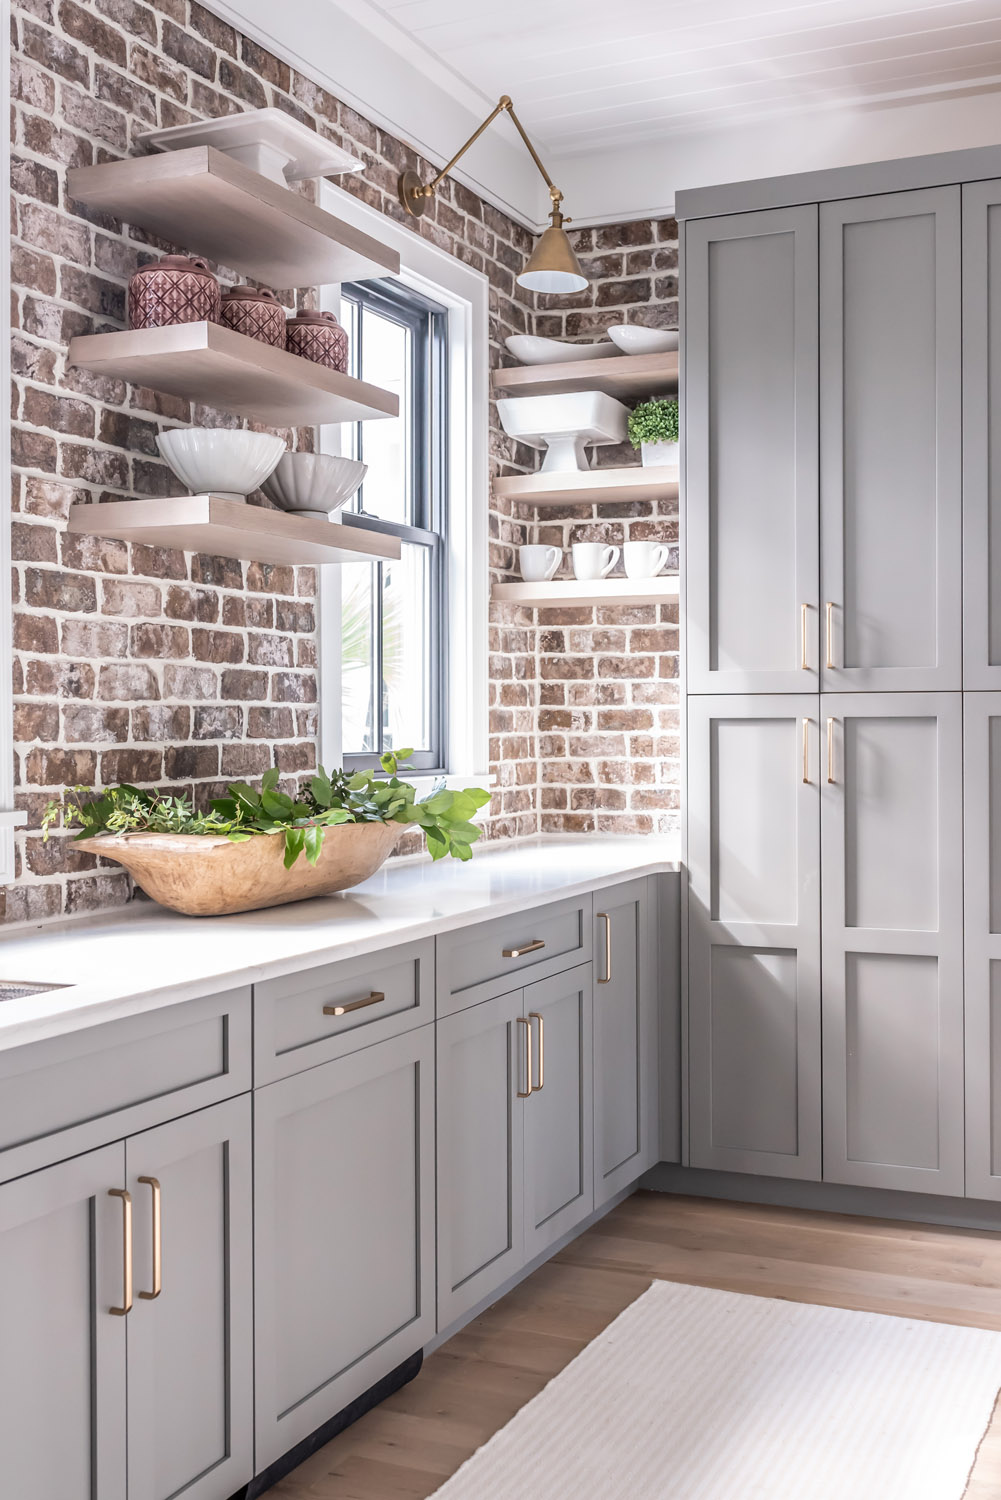 Image of: Kitchen With Gray Cabinets Why To Choose This Trend Decoholic